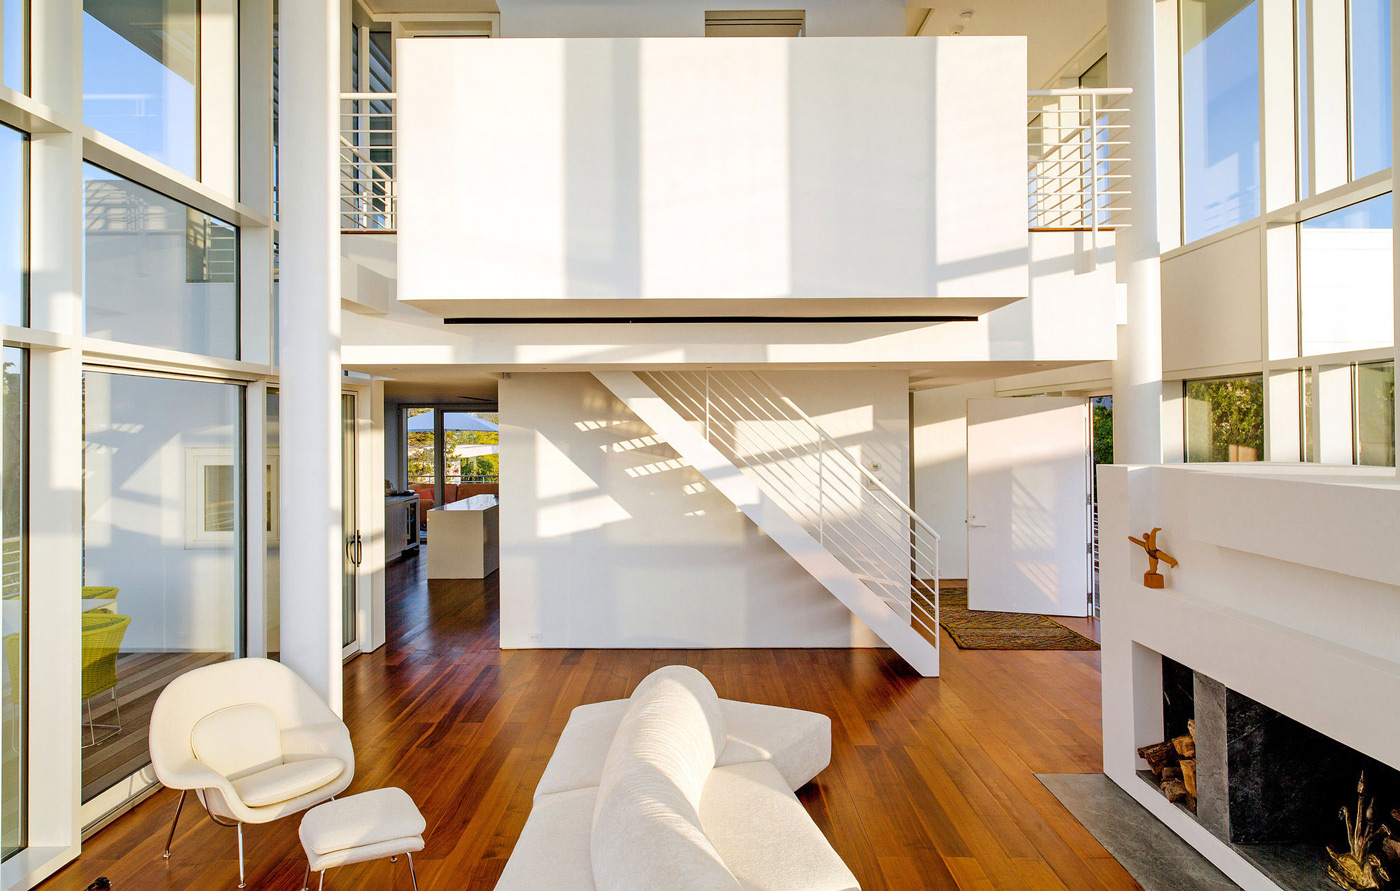 Fire Island House by Richard Meier